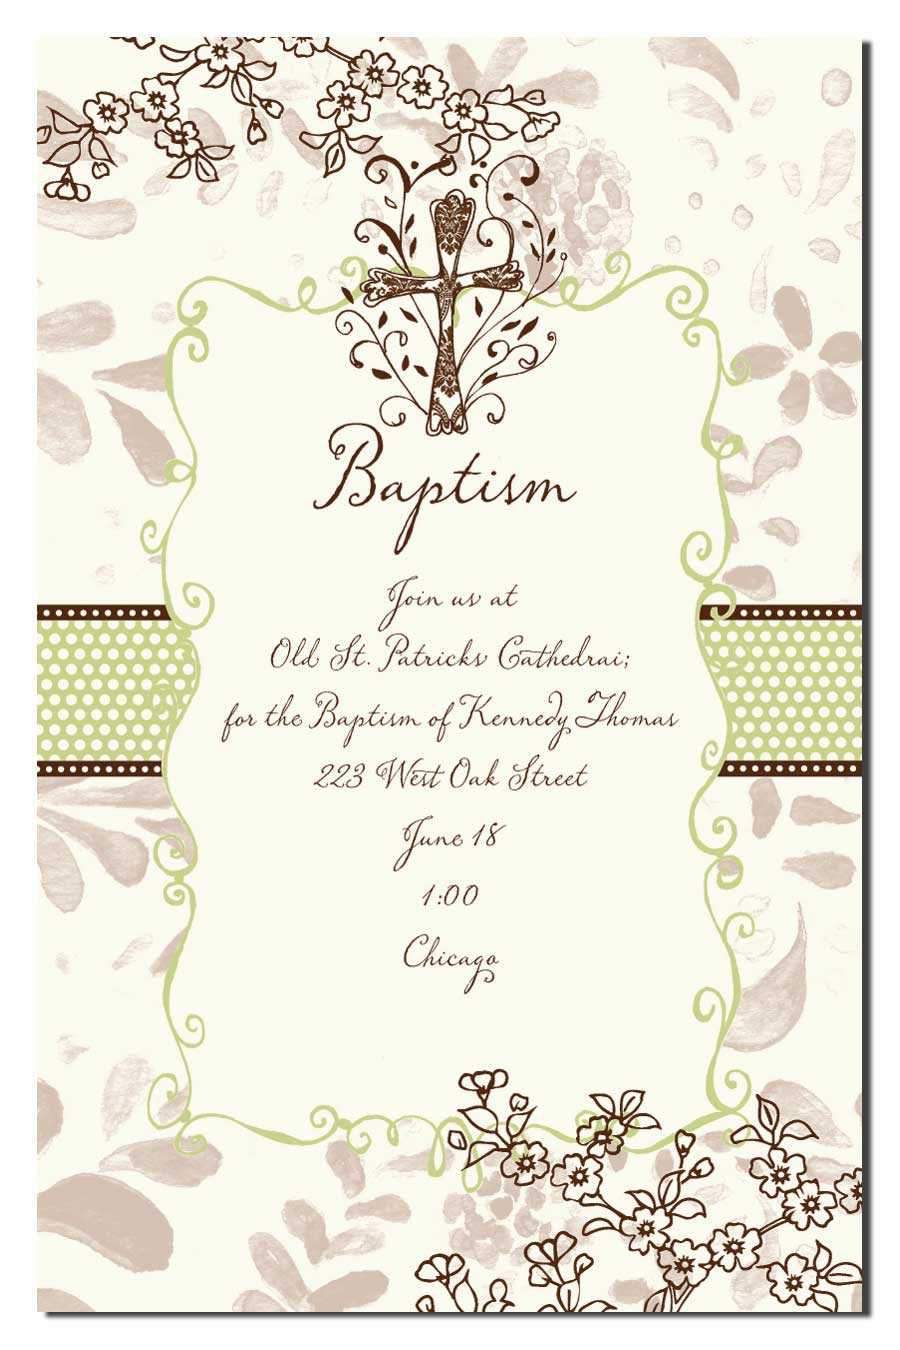 Religious invitation templates pertamini religious invitation templates solutioingenieria